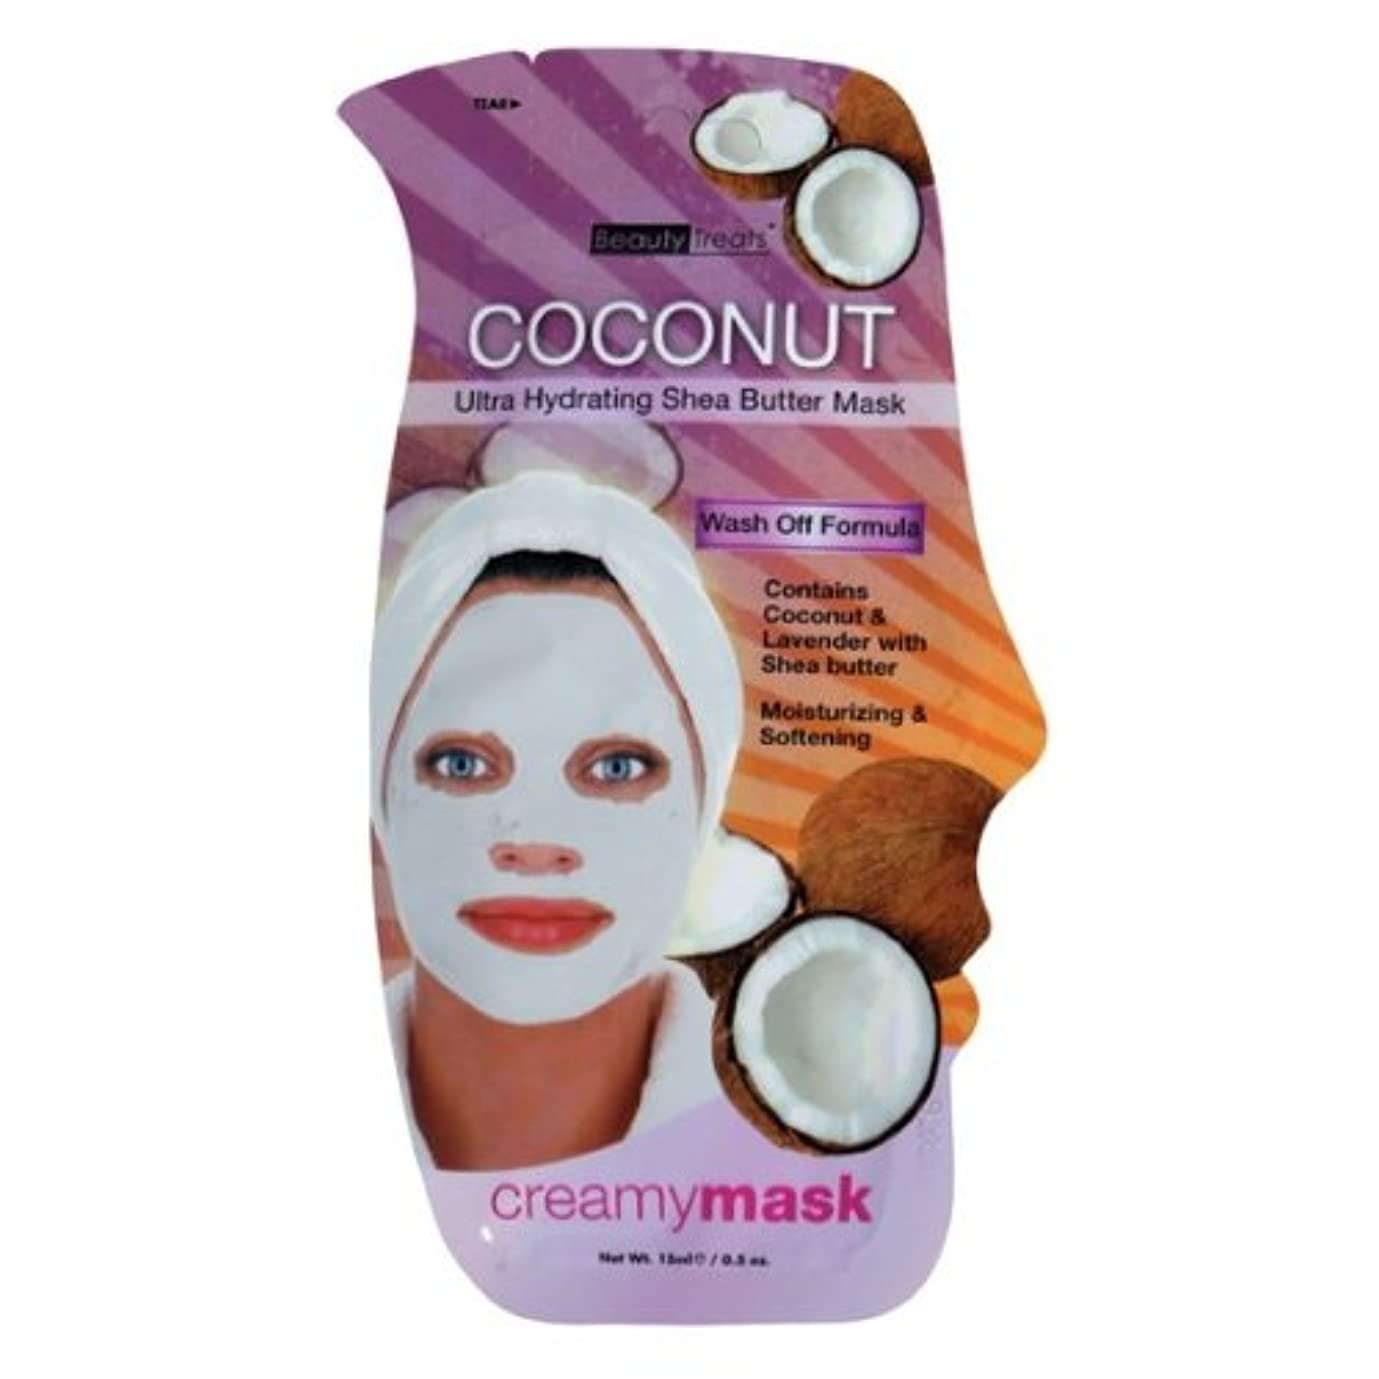 ビーチファイアル変わる(3 Pack) BEAUTY TREATS Coconut Ultra Hydrating Shea Butter Mask - Coconut (並行輸入品)